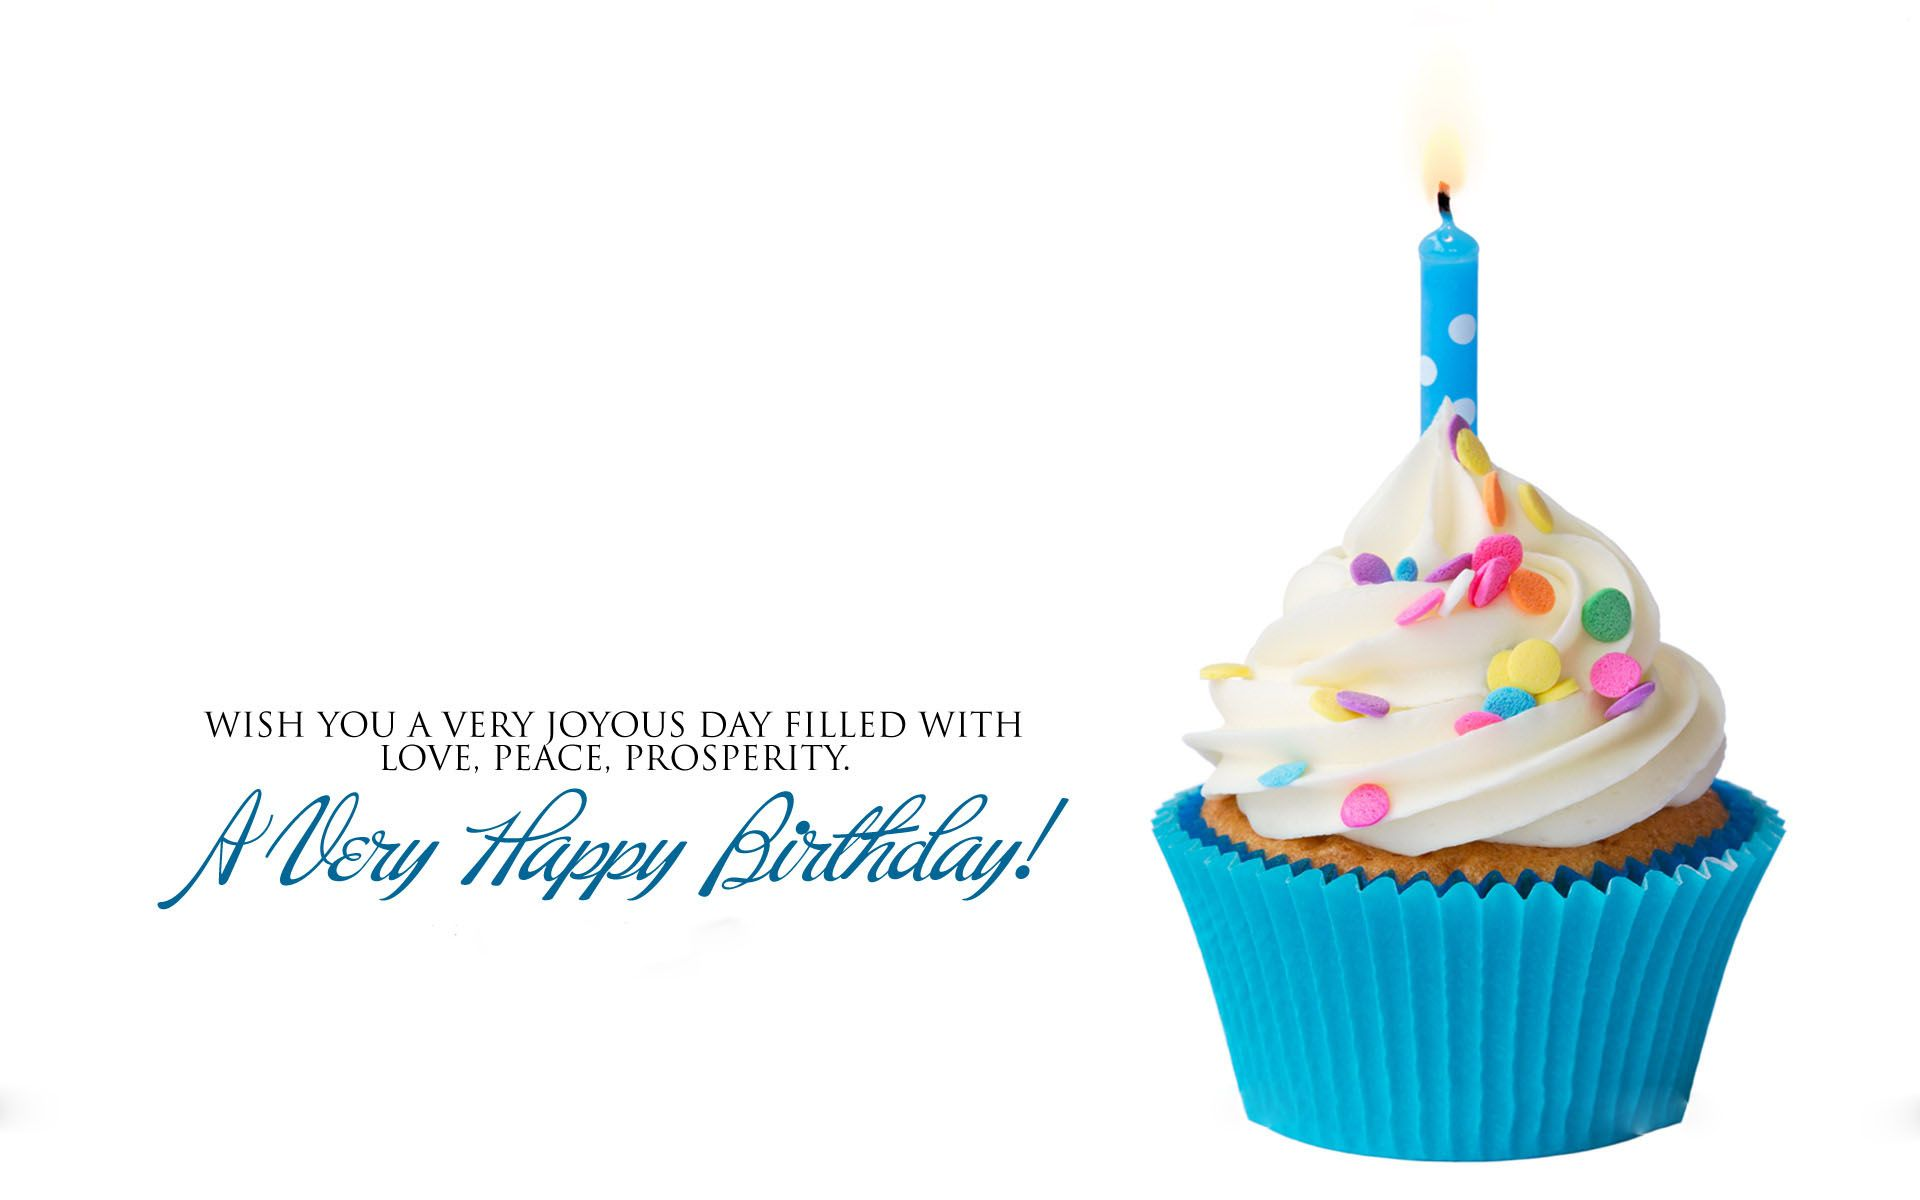 Exceptional Cute And Best Loved Wallpapers And SmS Birthday Wishing Wallpapers